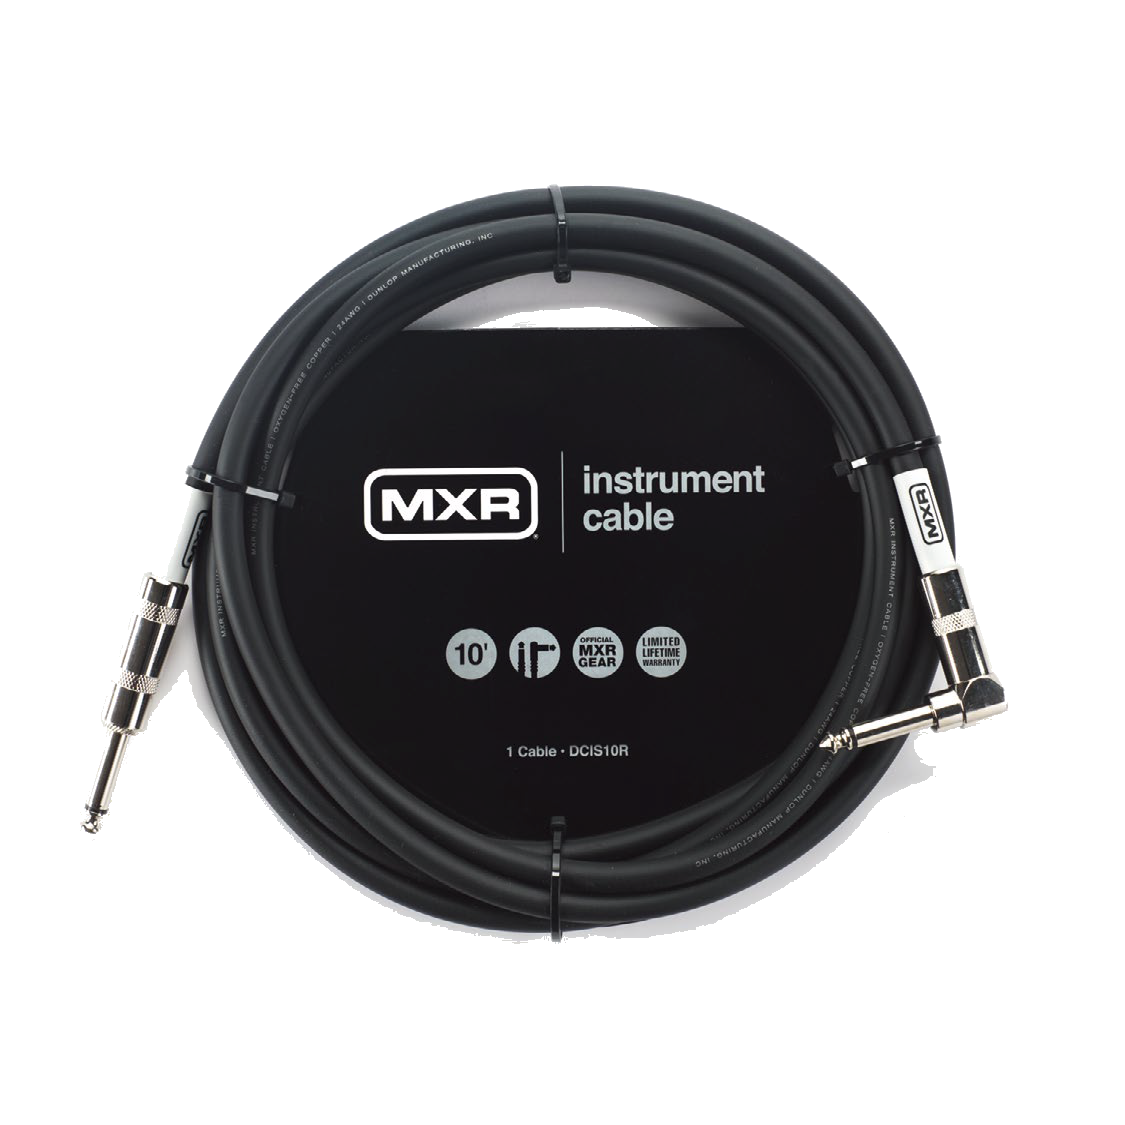 mxr-inst-cable